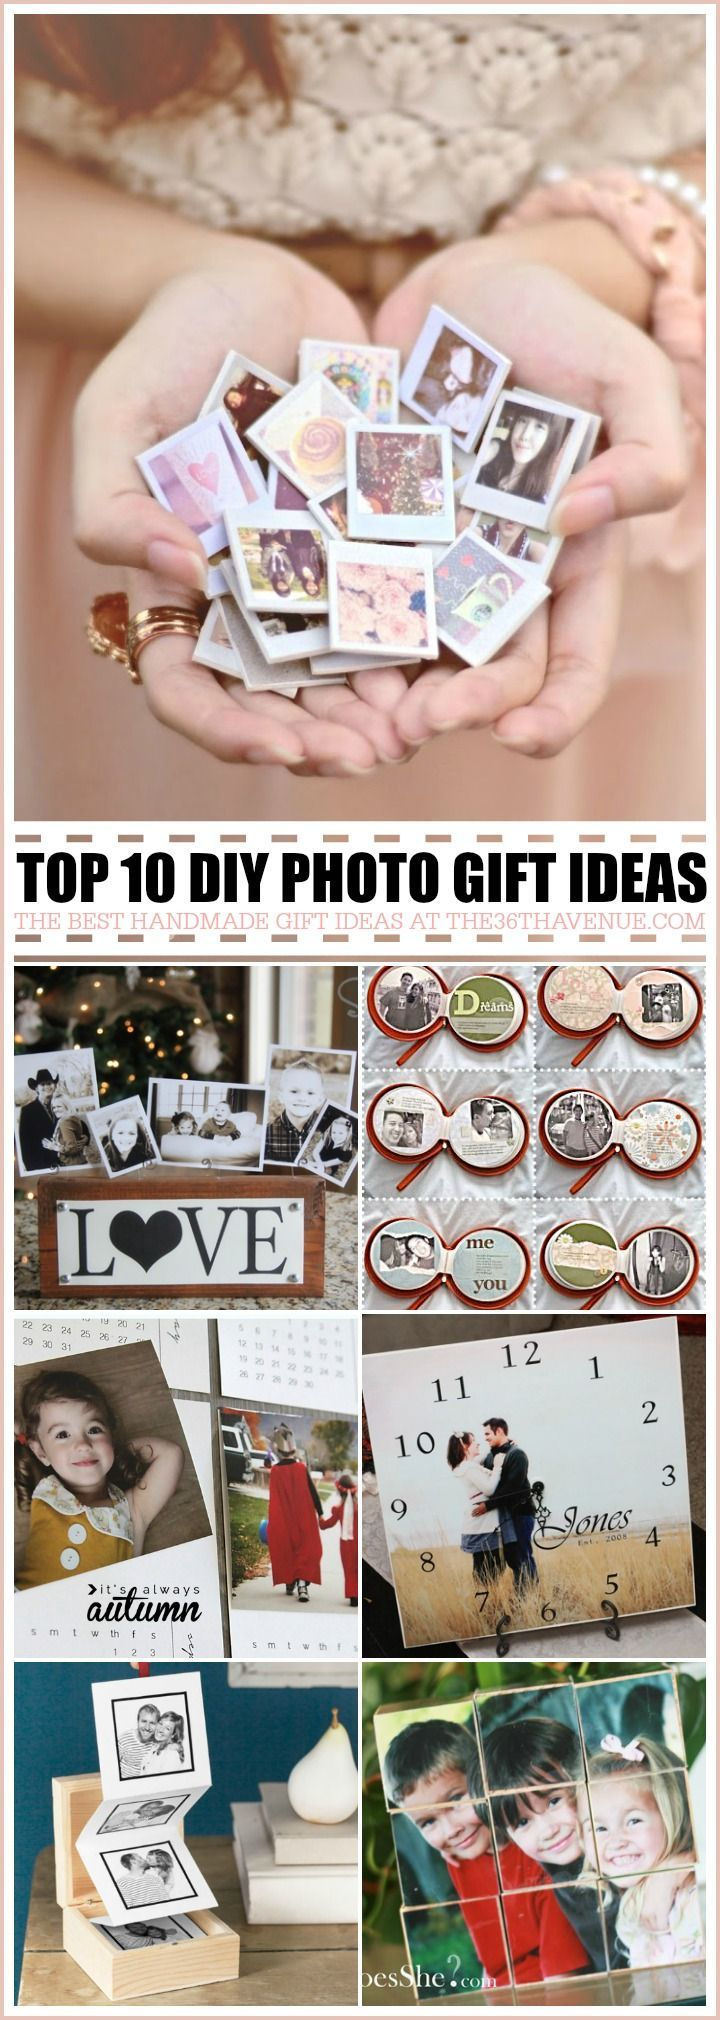 Top 10 handmade gifts using photos pinterest top 10 handmade gifts using photos these gifts ideas are perfect for christmas gifts negle Images